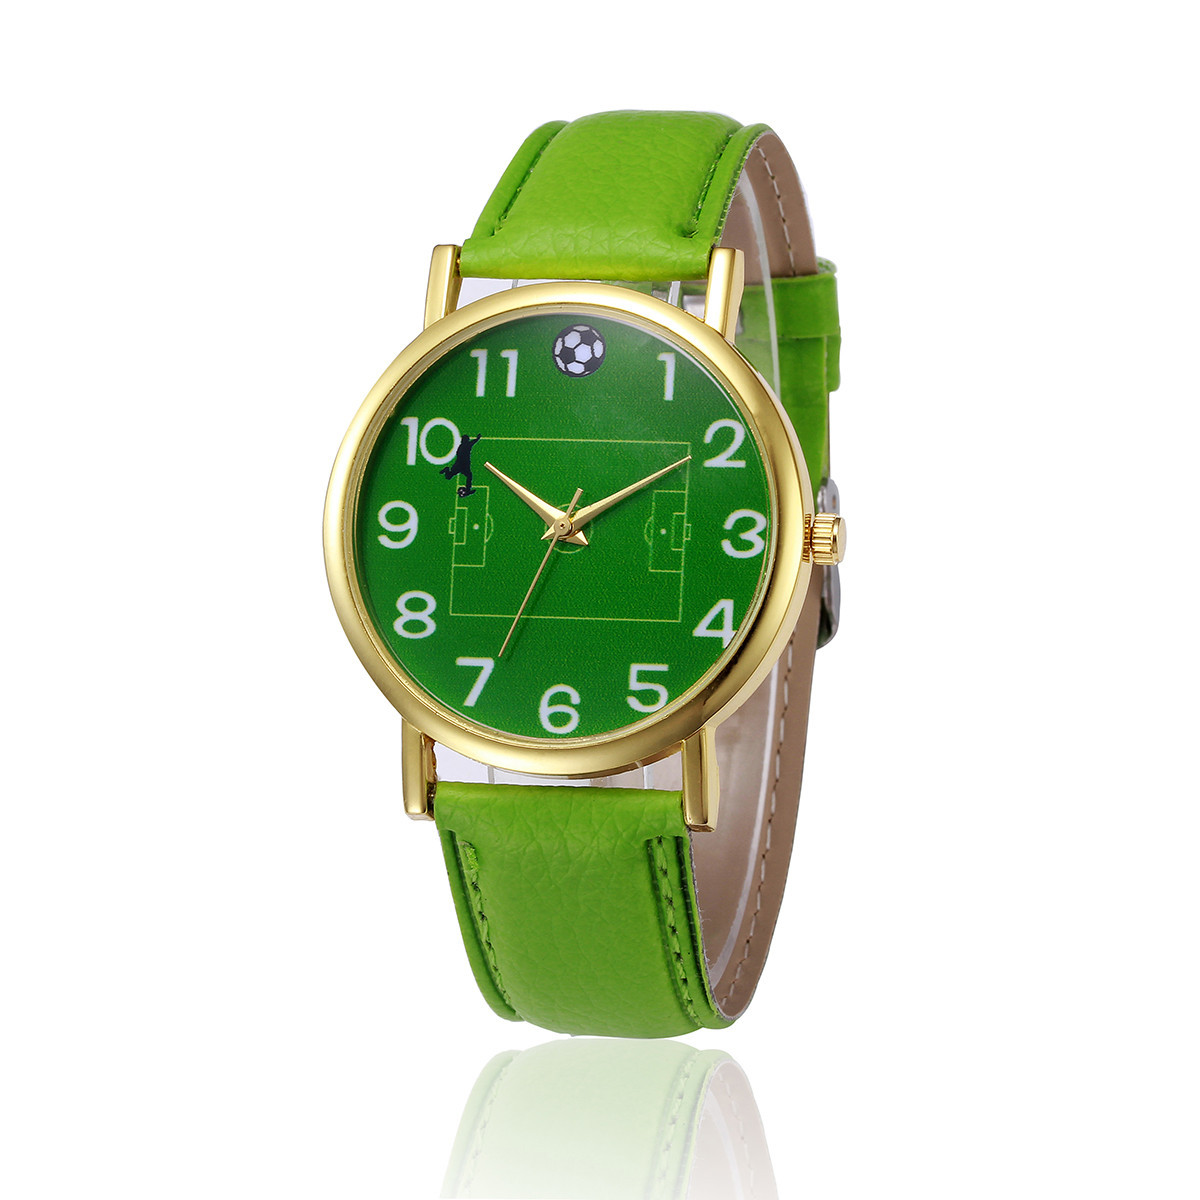 Women's Watch Luxury Top Brand Women Watches Green Japan Leather Female Wrist Clock Water Resistant With Original Box &Ff